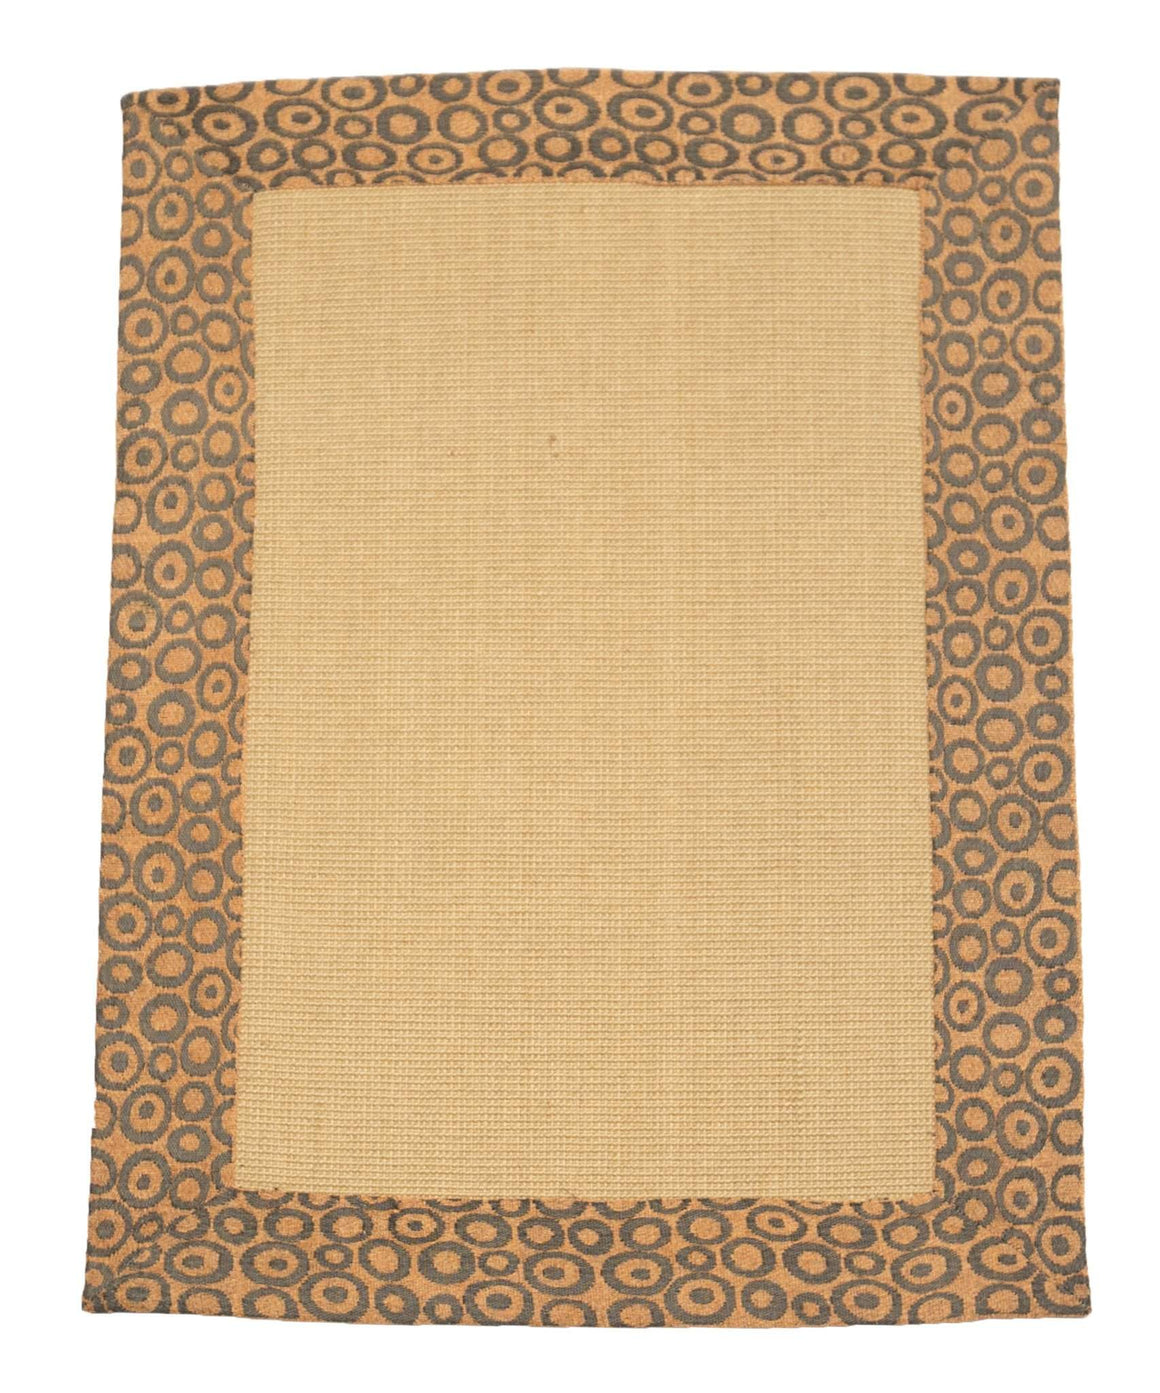 2' x 3' Natural Jute Eco Friendly Small Rug by Rug Shop and More Area Rugs - Rug Shop and More